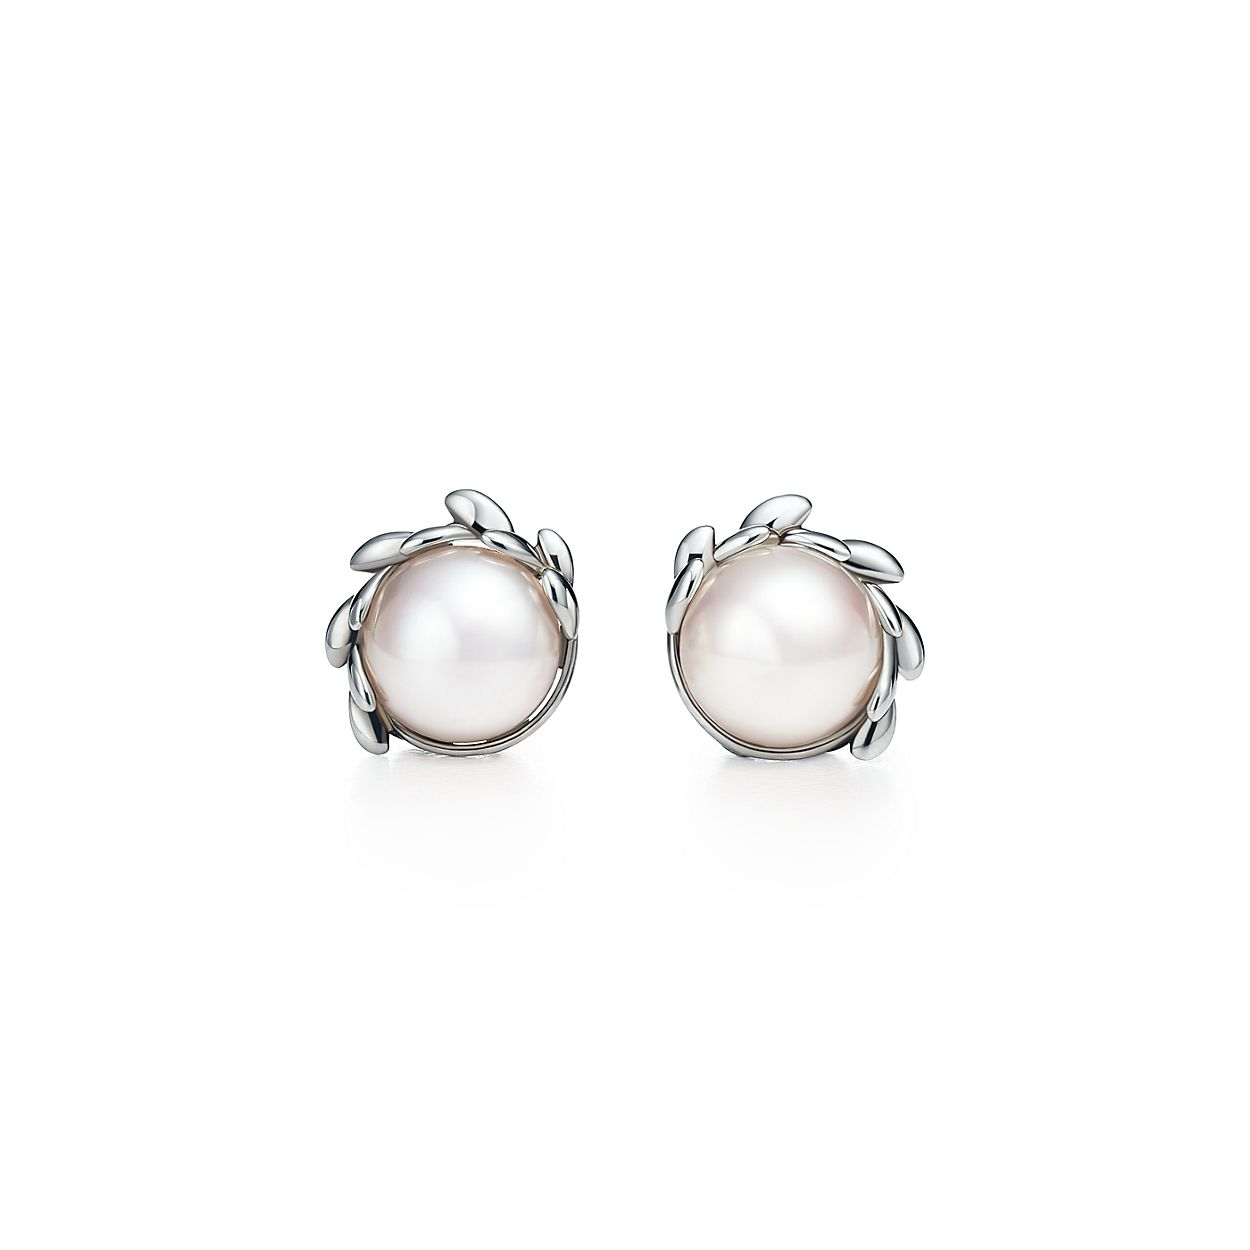 peral flower sterling and over of shipping mother free jewelry product on earrings overstock pearl watches handmade orders silver